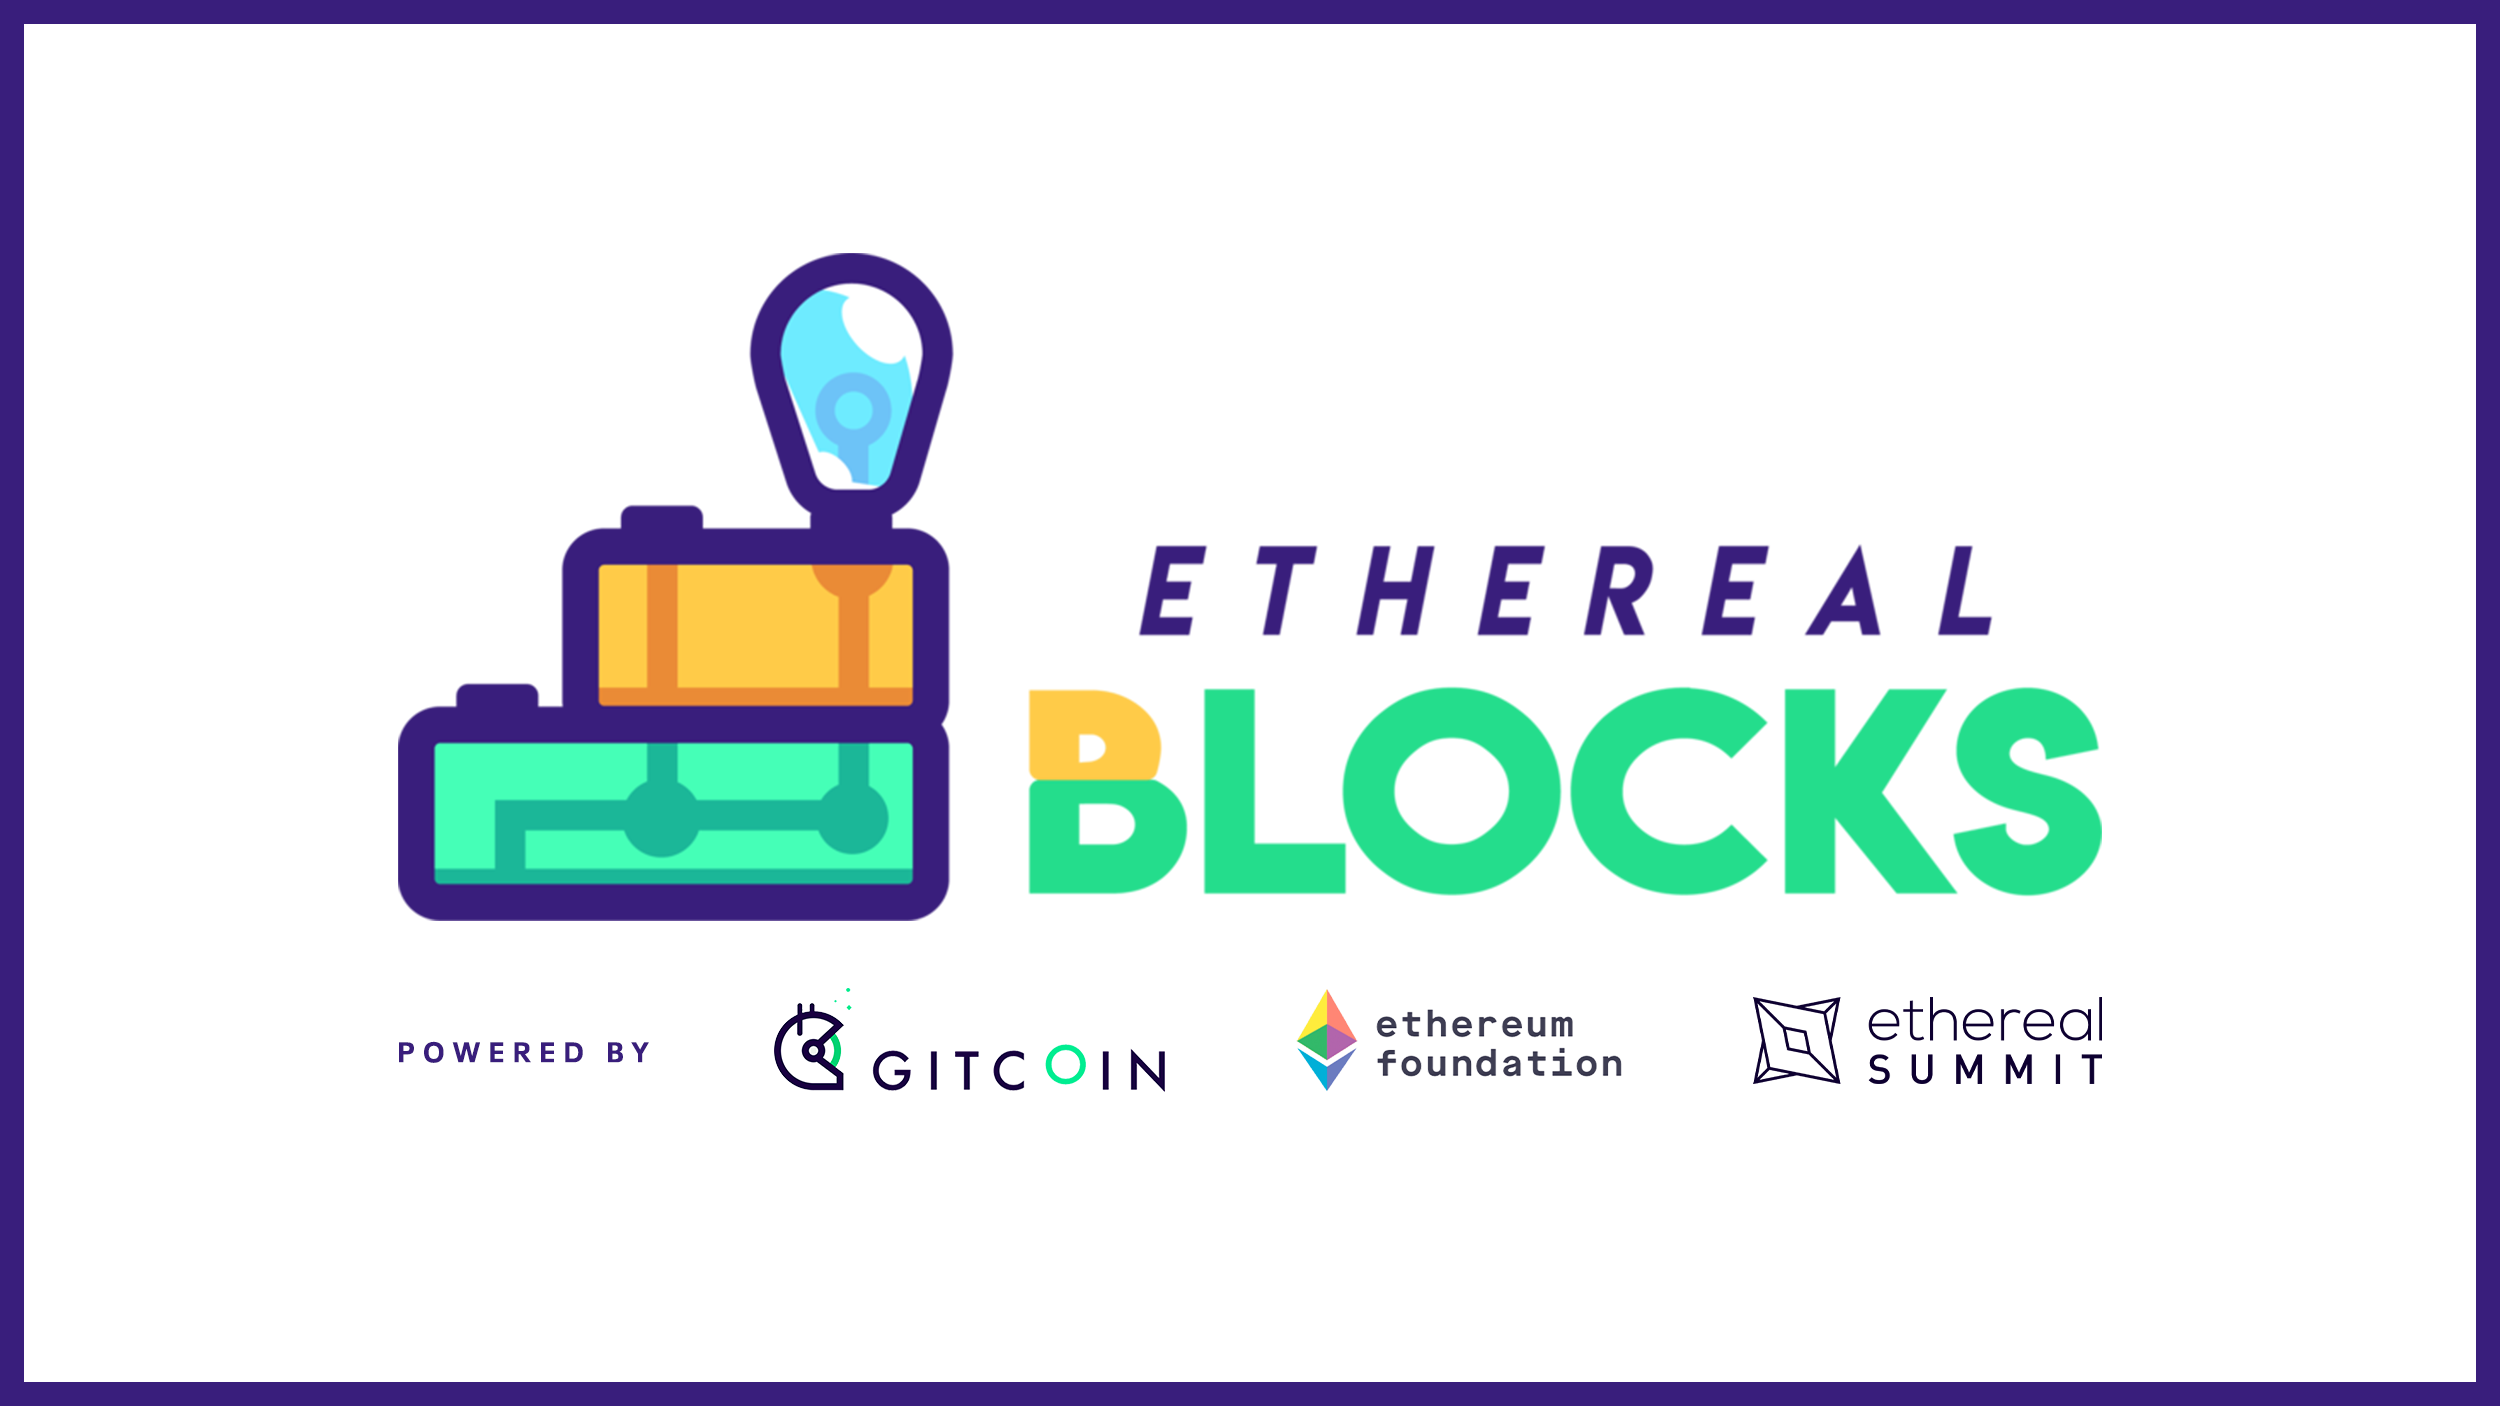 Ethereal Blocks Hackathon - Build projects that make a difference in the blockchain movement with some of the best developers in the world. $50,000+ in prizes up for grabs!Powered by Gitcoin, Ethereal Summit and Ethereum Foundation.